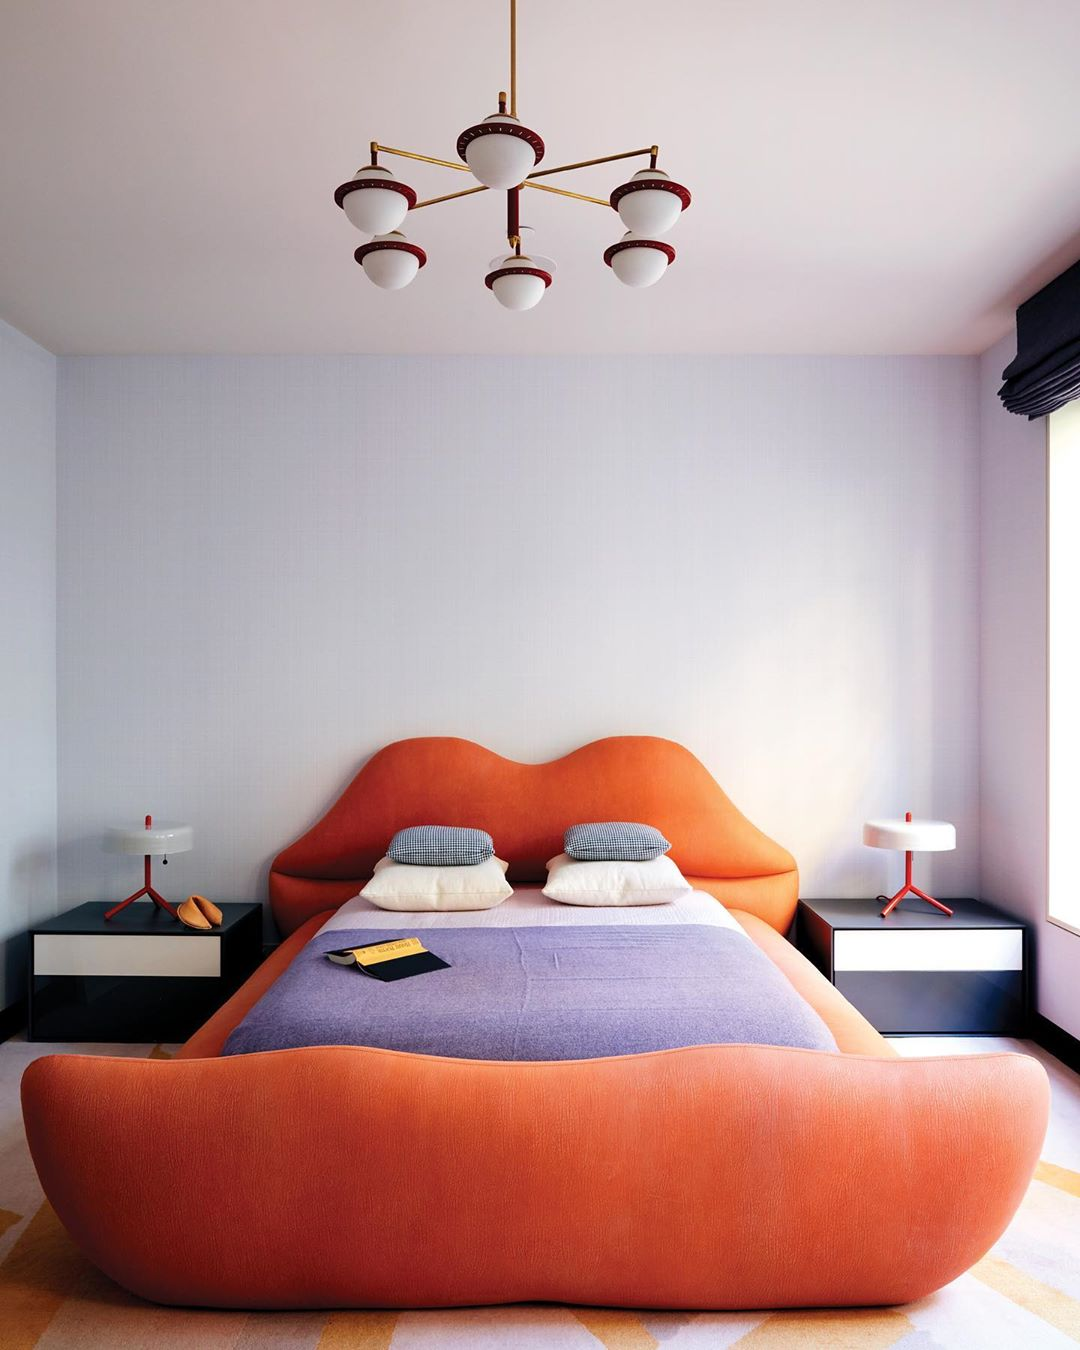 A large red bed holds a mattress covered in purple bedsheets with four pillows. There are two side table lamps, one on each sidle of the bed. A seven-bulb white and brass light fixture hangs from above.